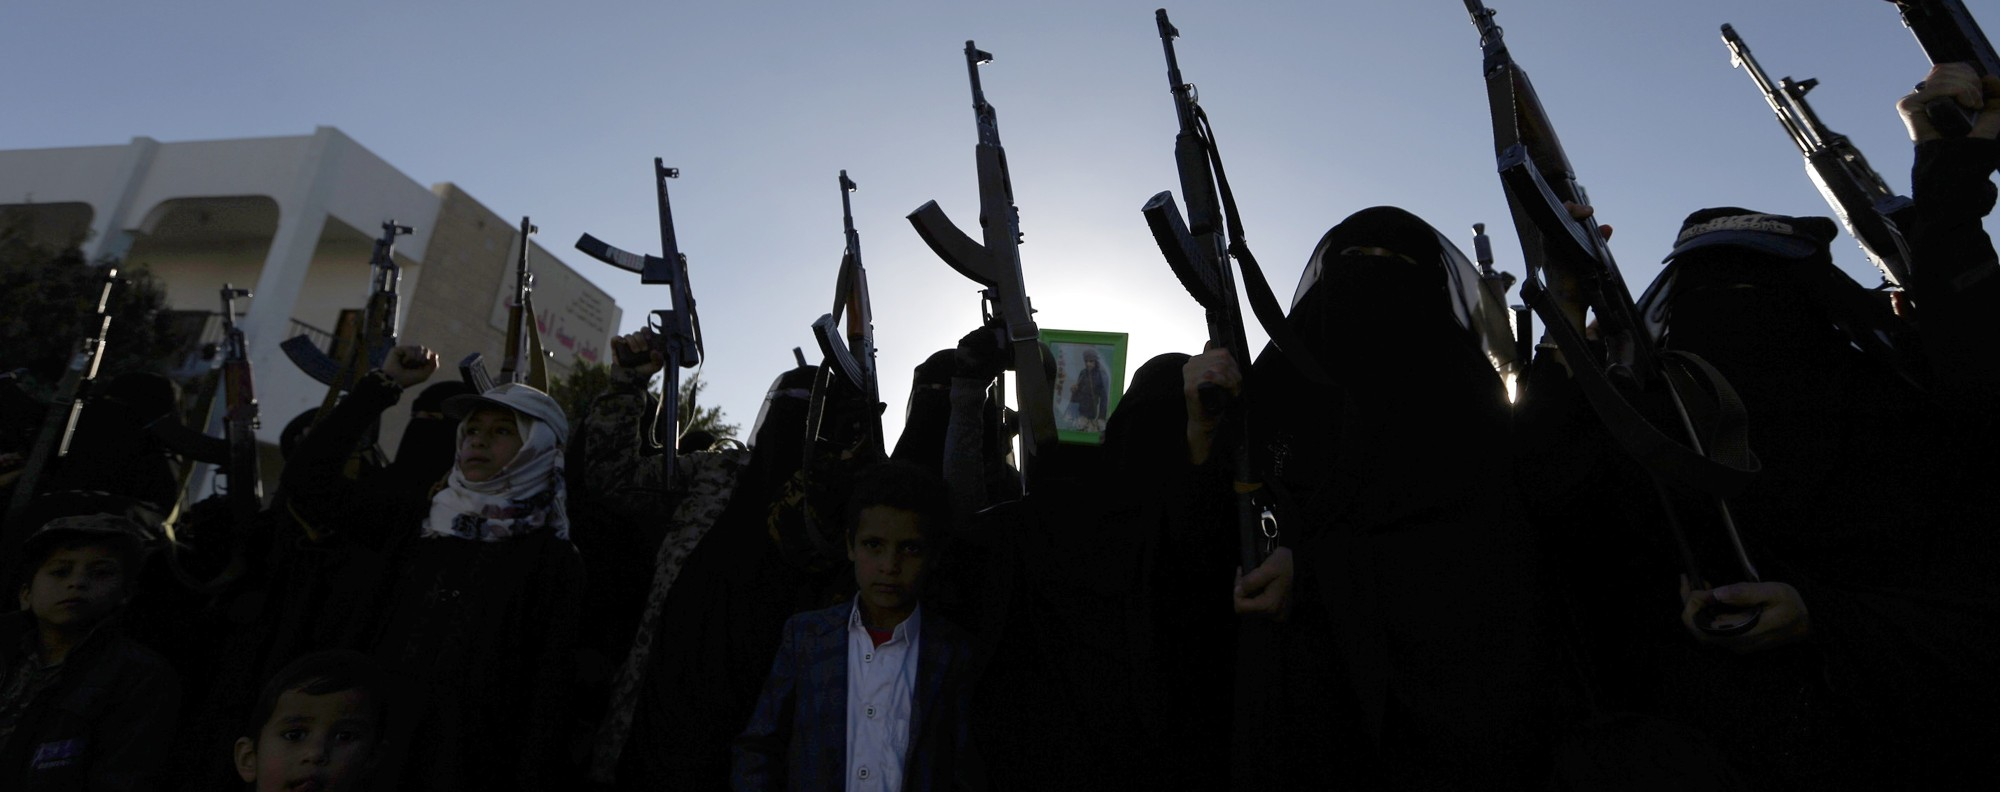 Women loyal to the Houthi rebels in Yemen. Photo: AFP